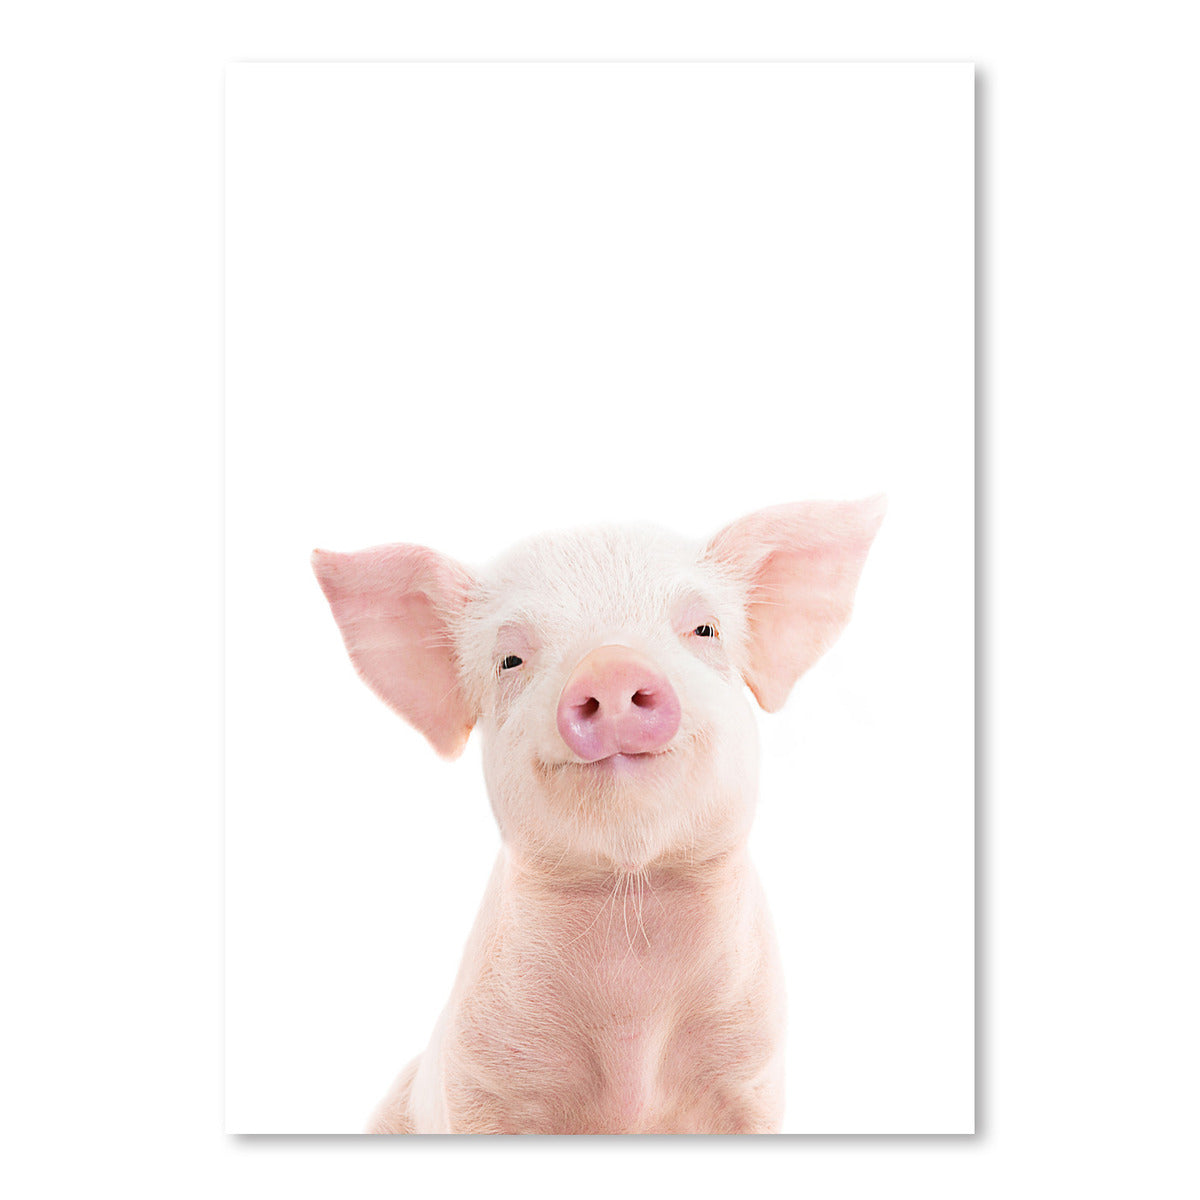 Piglet by Sisi and Seb - Art Print - Americanflat